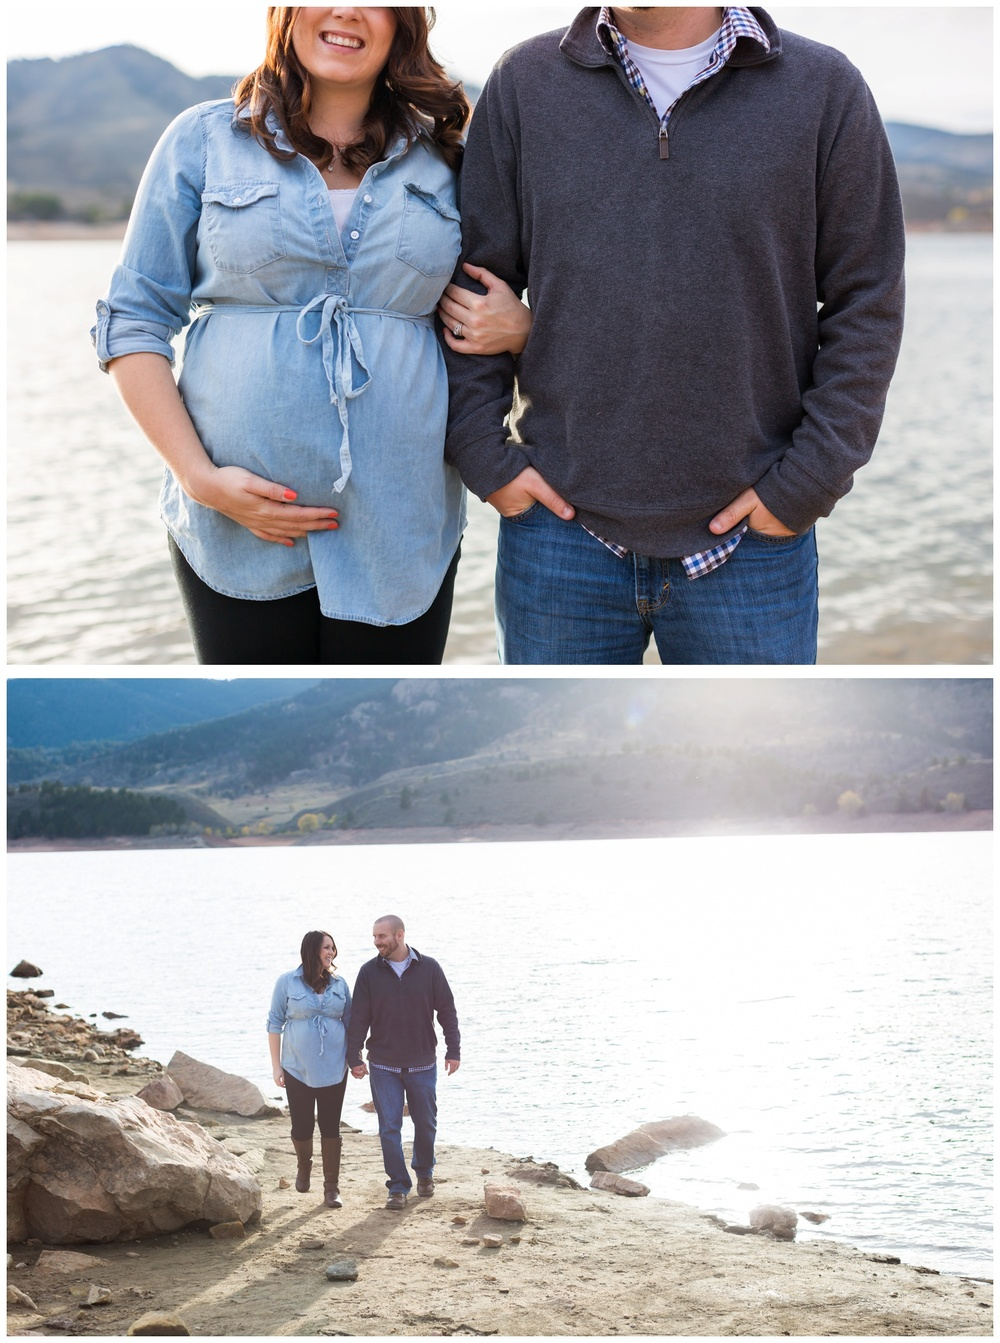 Fort Collins Maternity Photography03.jpg